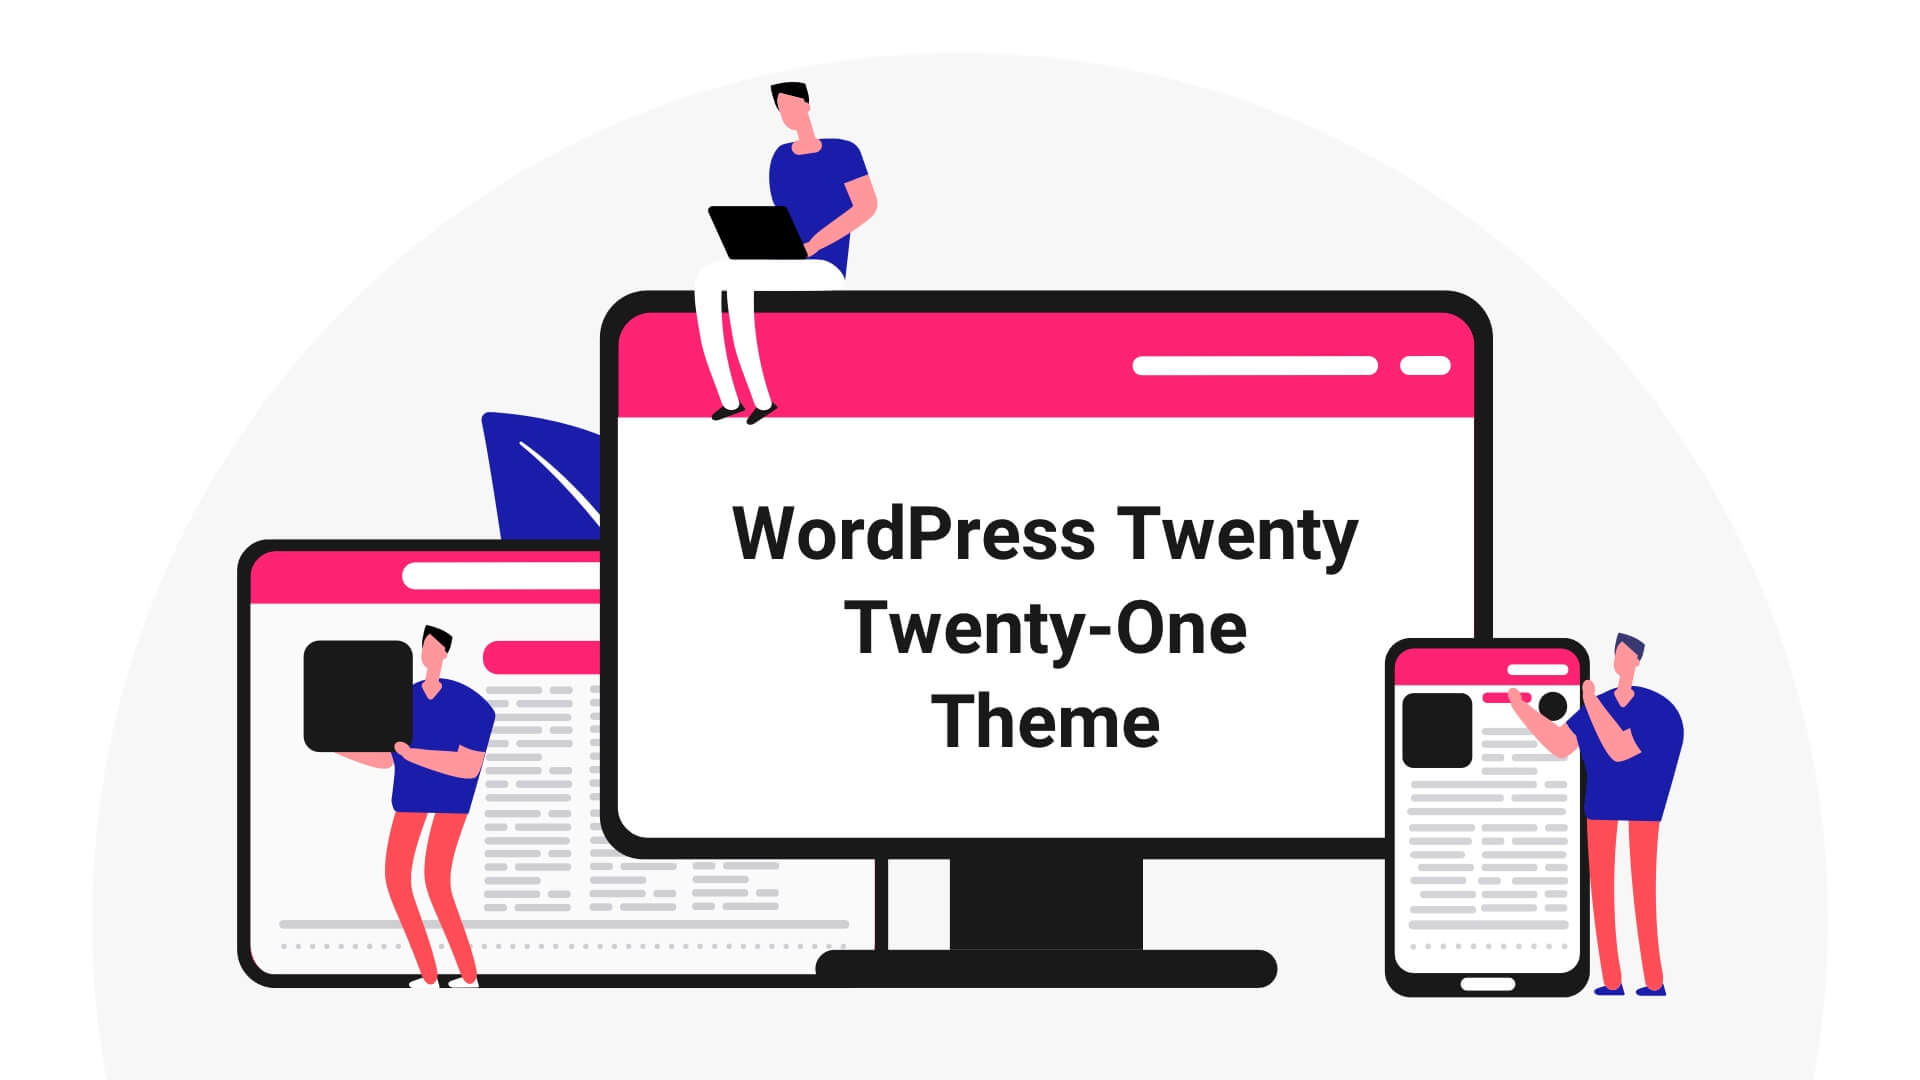 What are New Things in WordPress Twenty Twenty-One Theme